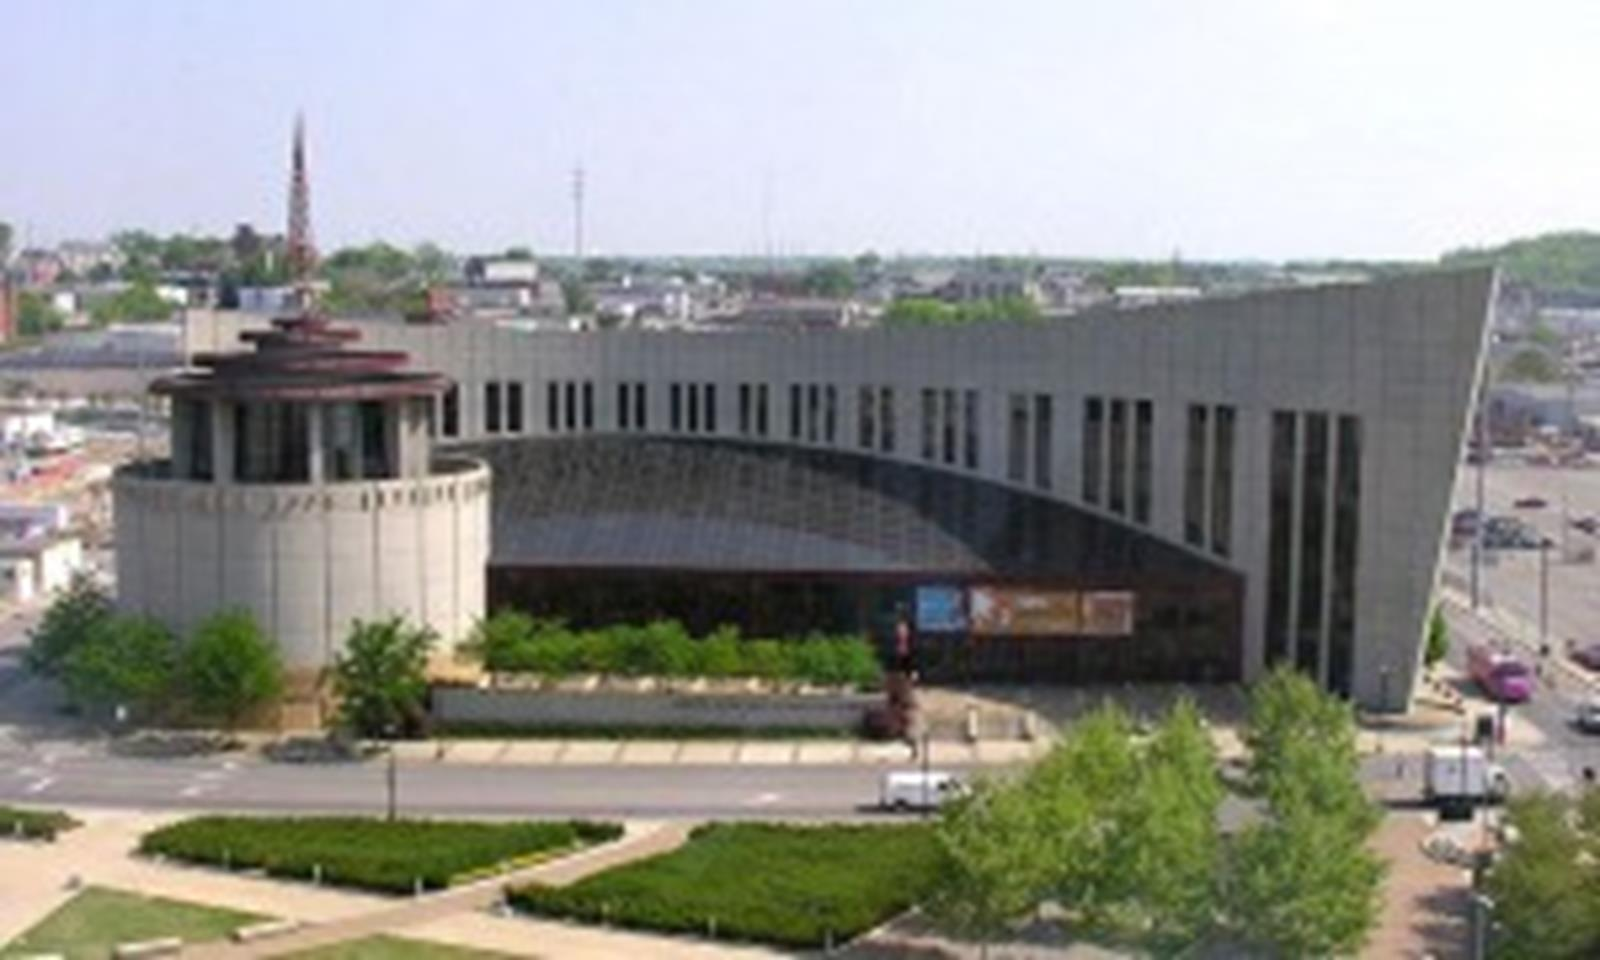 Nashville's Famous Country Music Hall of Fame